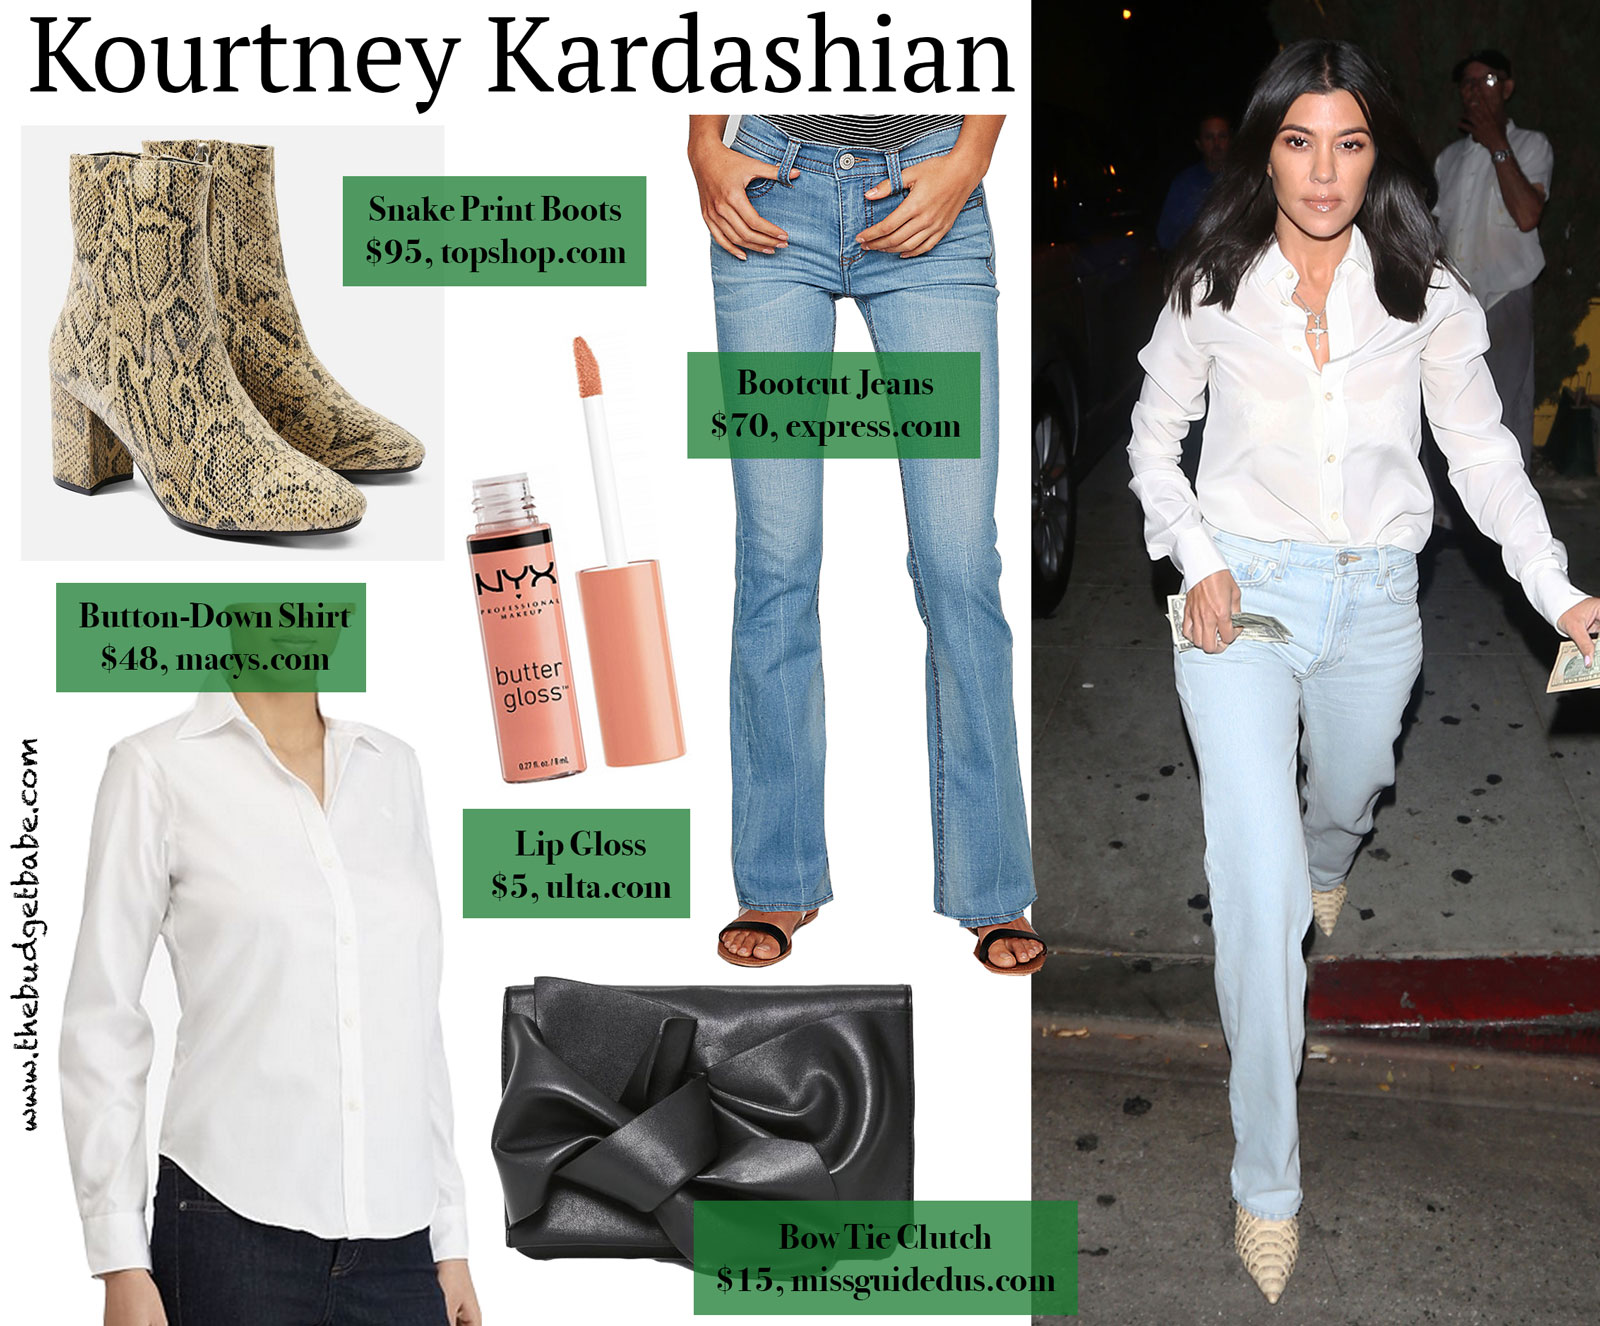 Kourtney Kardashian Python Boots and White Shirt Look for Less